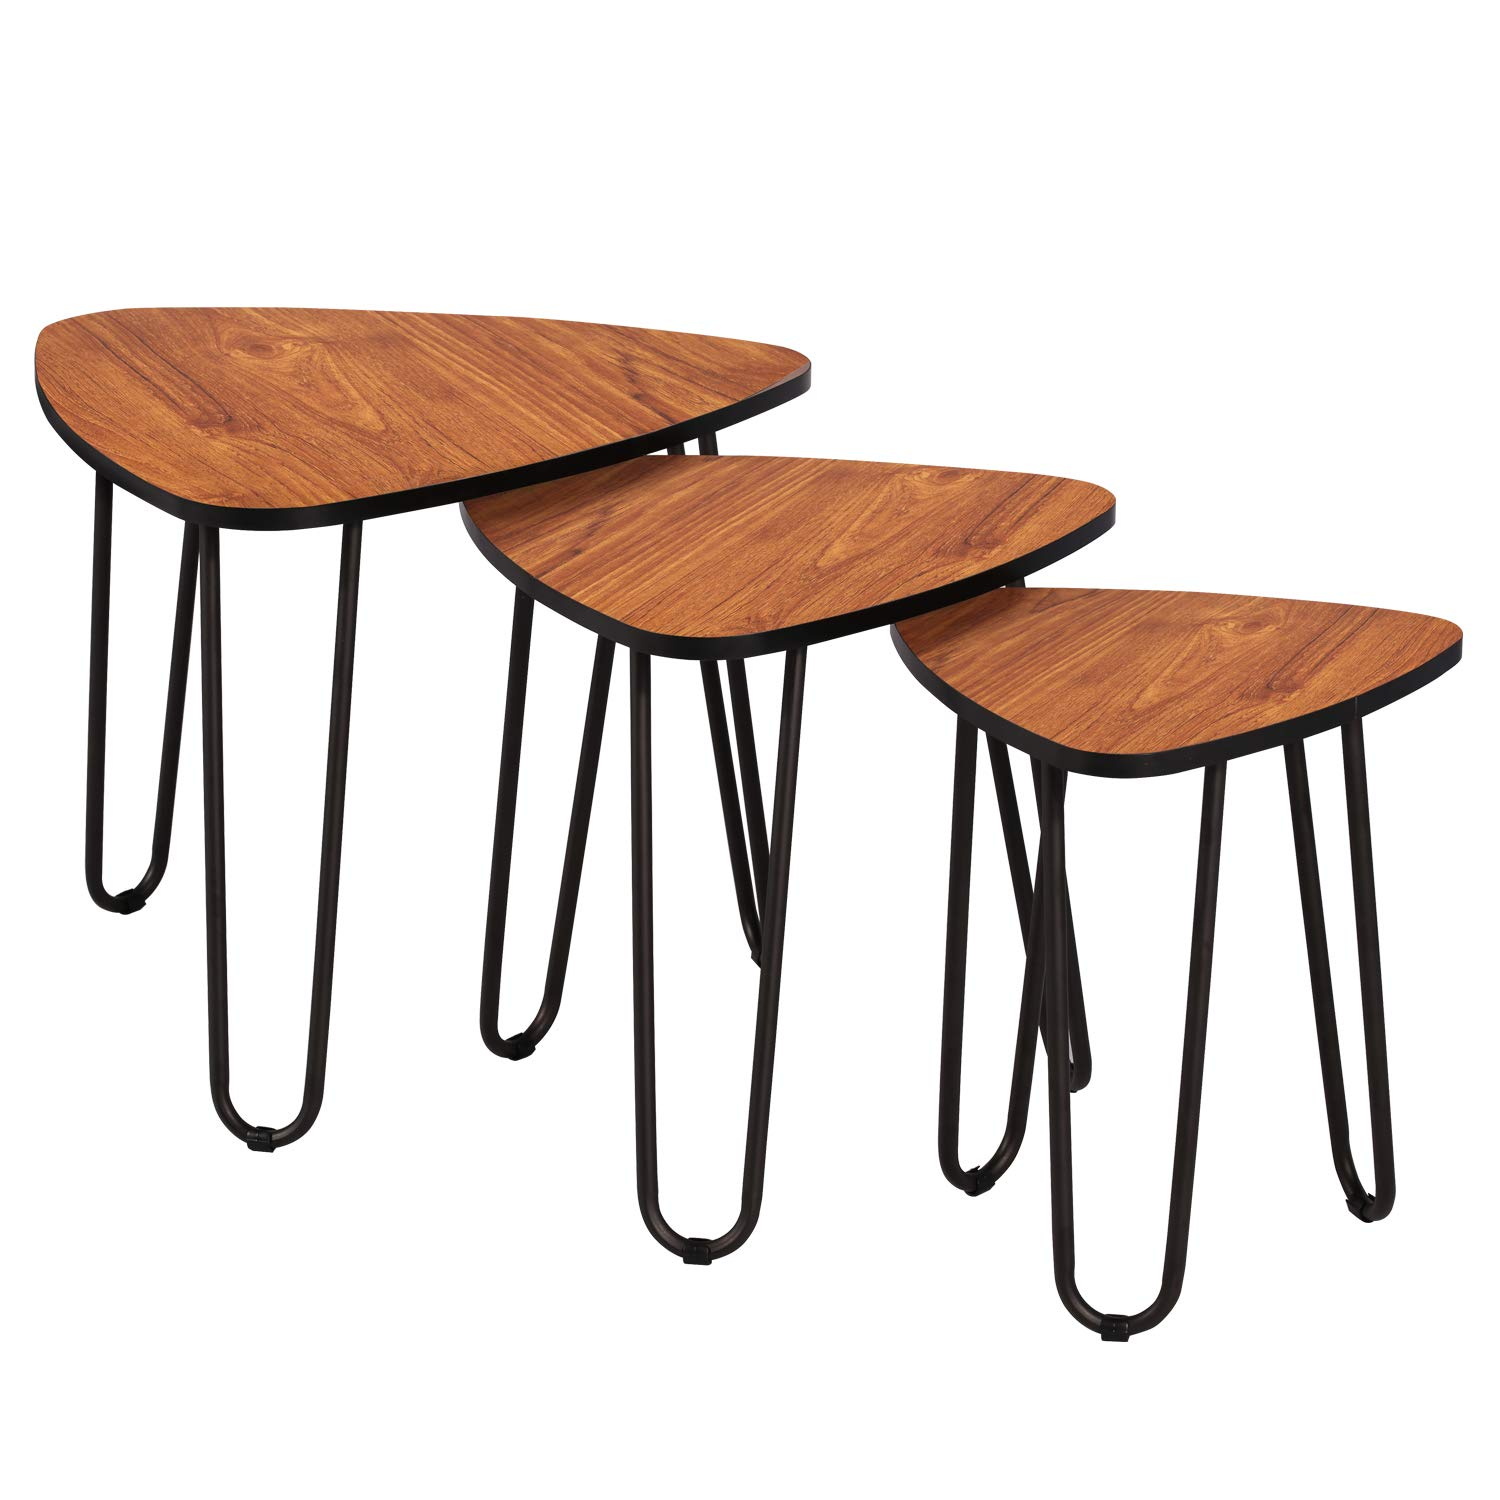 VECELO 3-Piece Nesting Side Coffee Table, Stacking End Tables for Living Room, Brown by VECELO